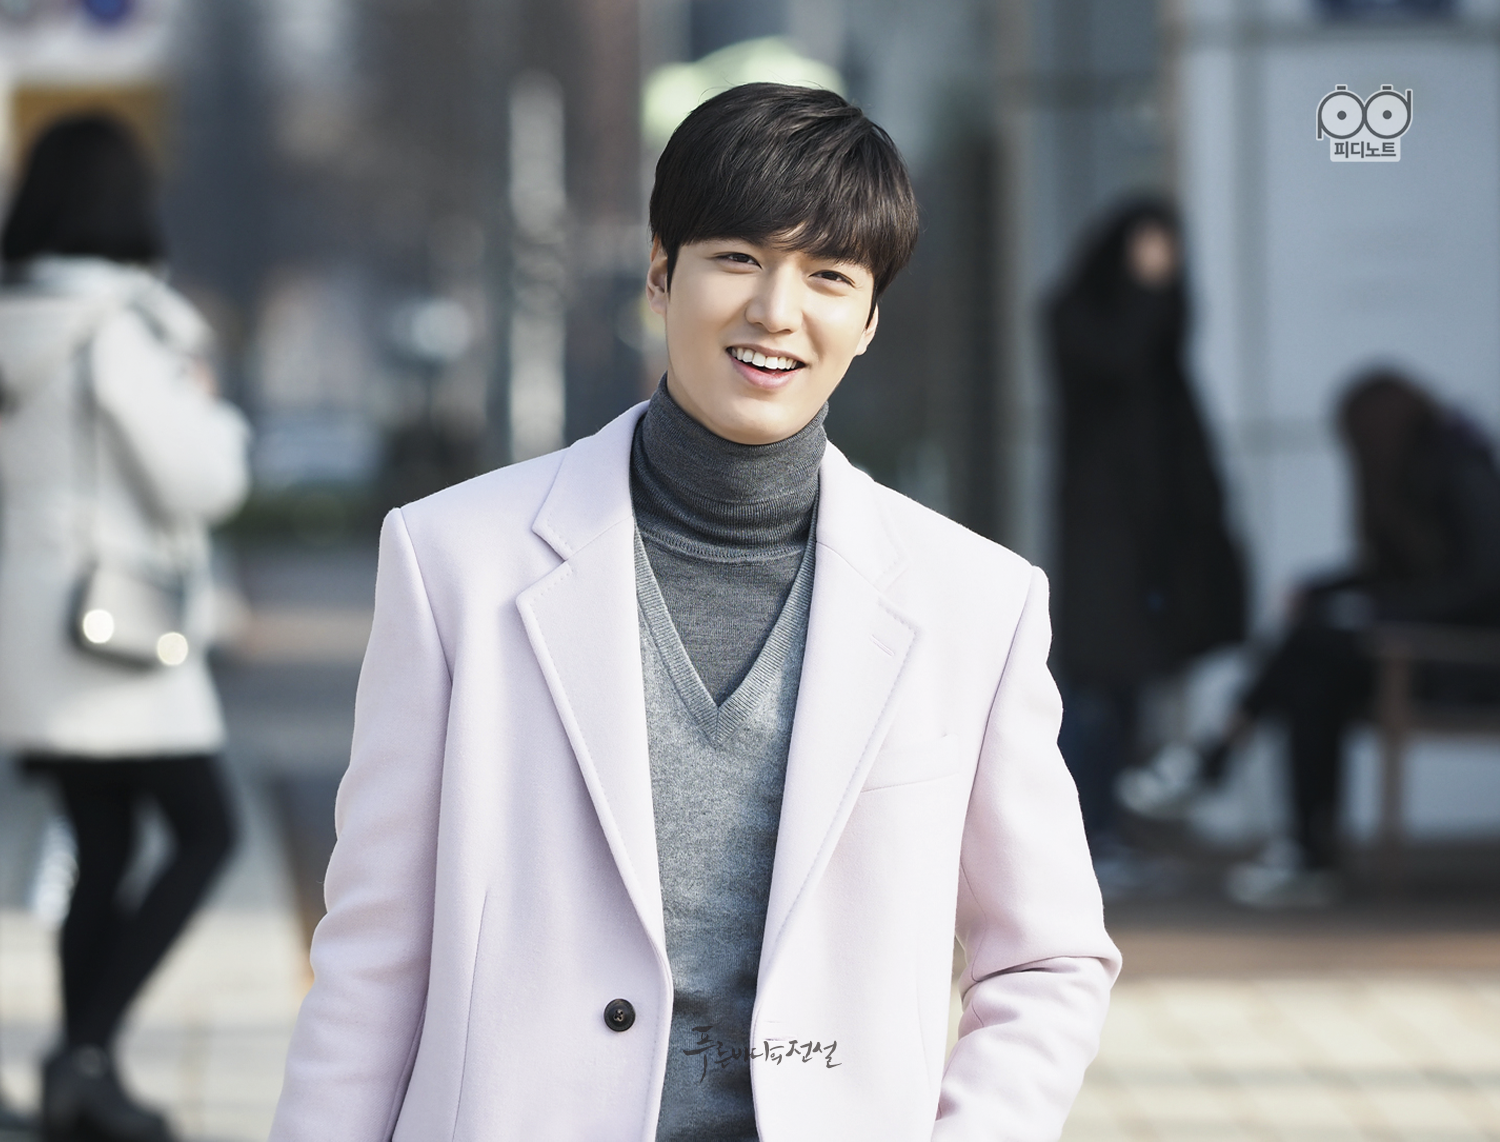 The King The Eternal Monarch cast, The King The Eternal Monarch summary, The King The Eternal Monarch drama, lee minho drama, lee minho 2019, lee minho 2020